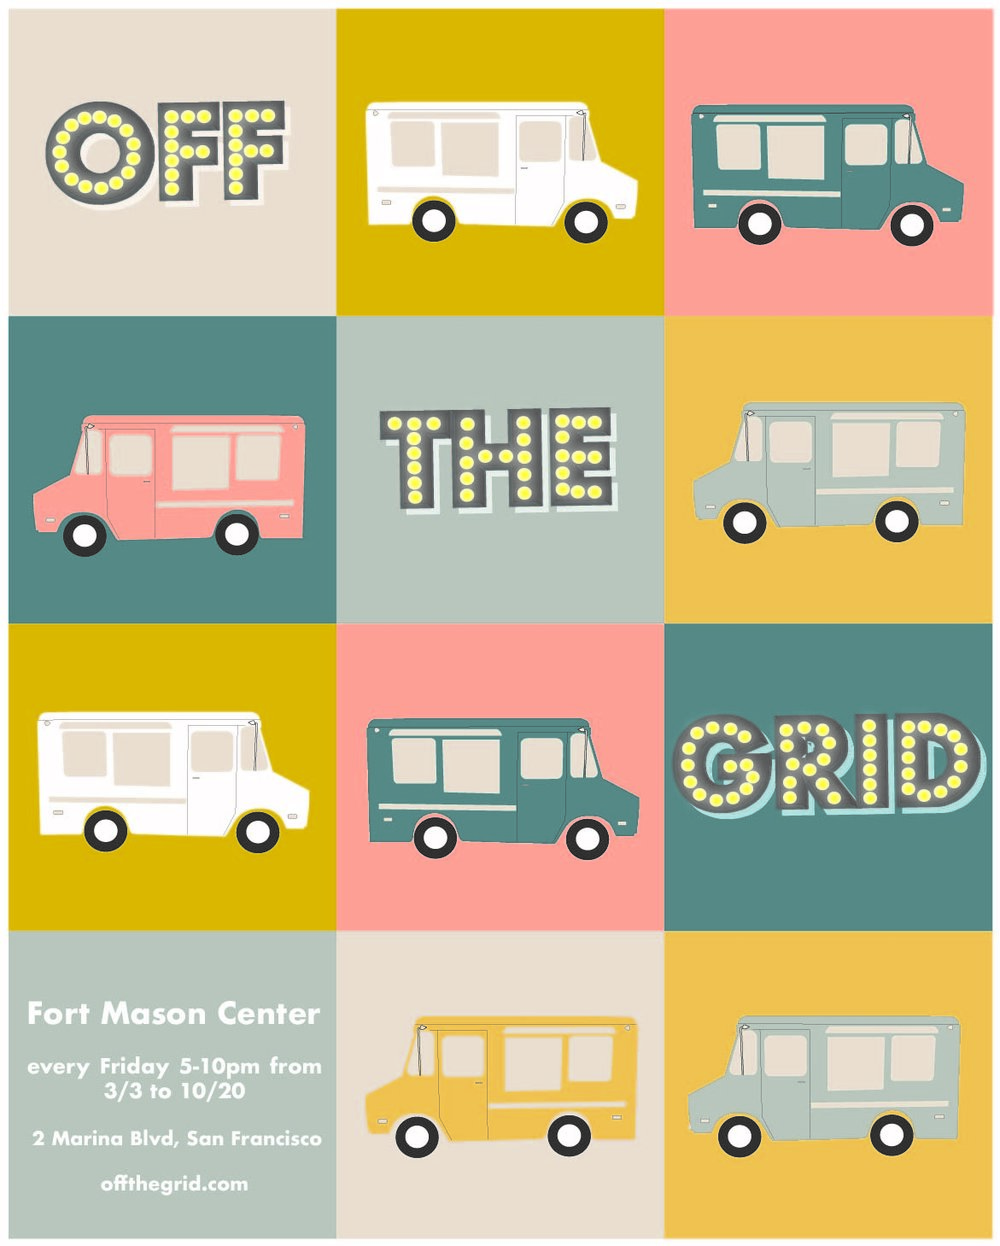 OFF THE GRID - Designed a poster for a Bay Area annual food truck festival